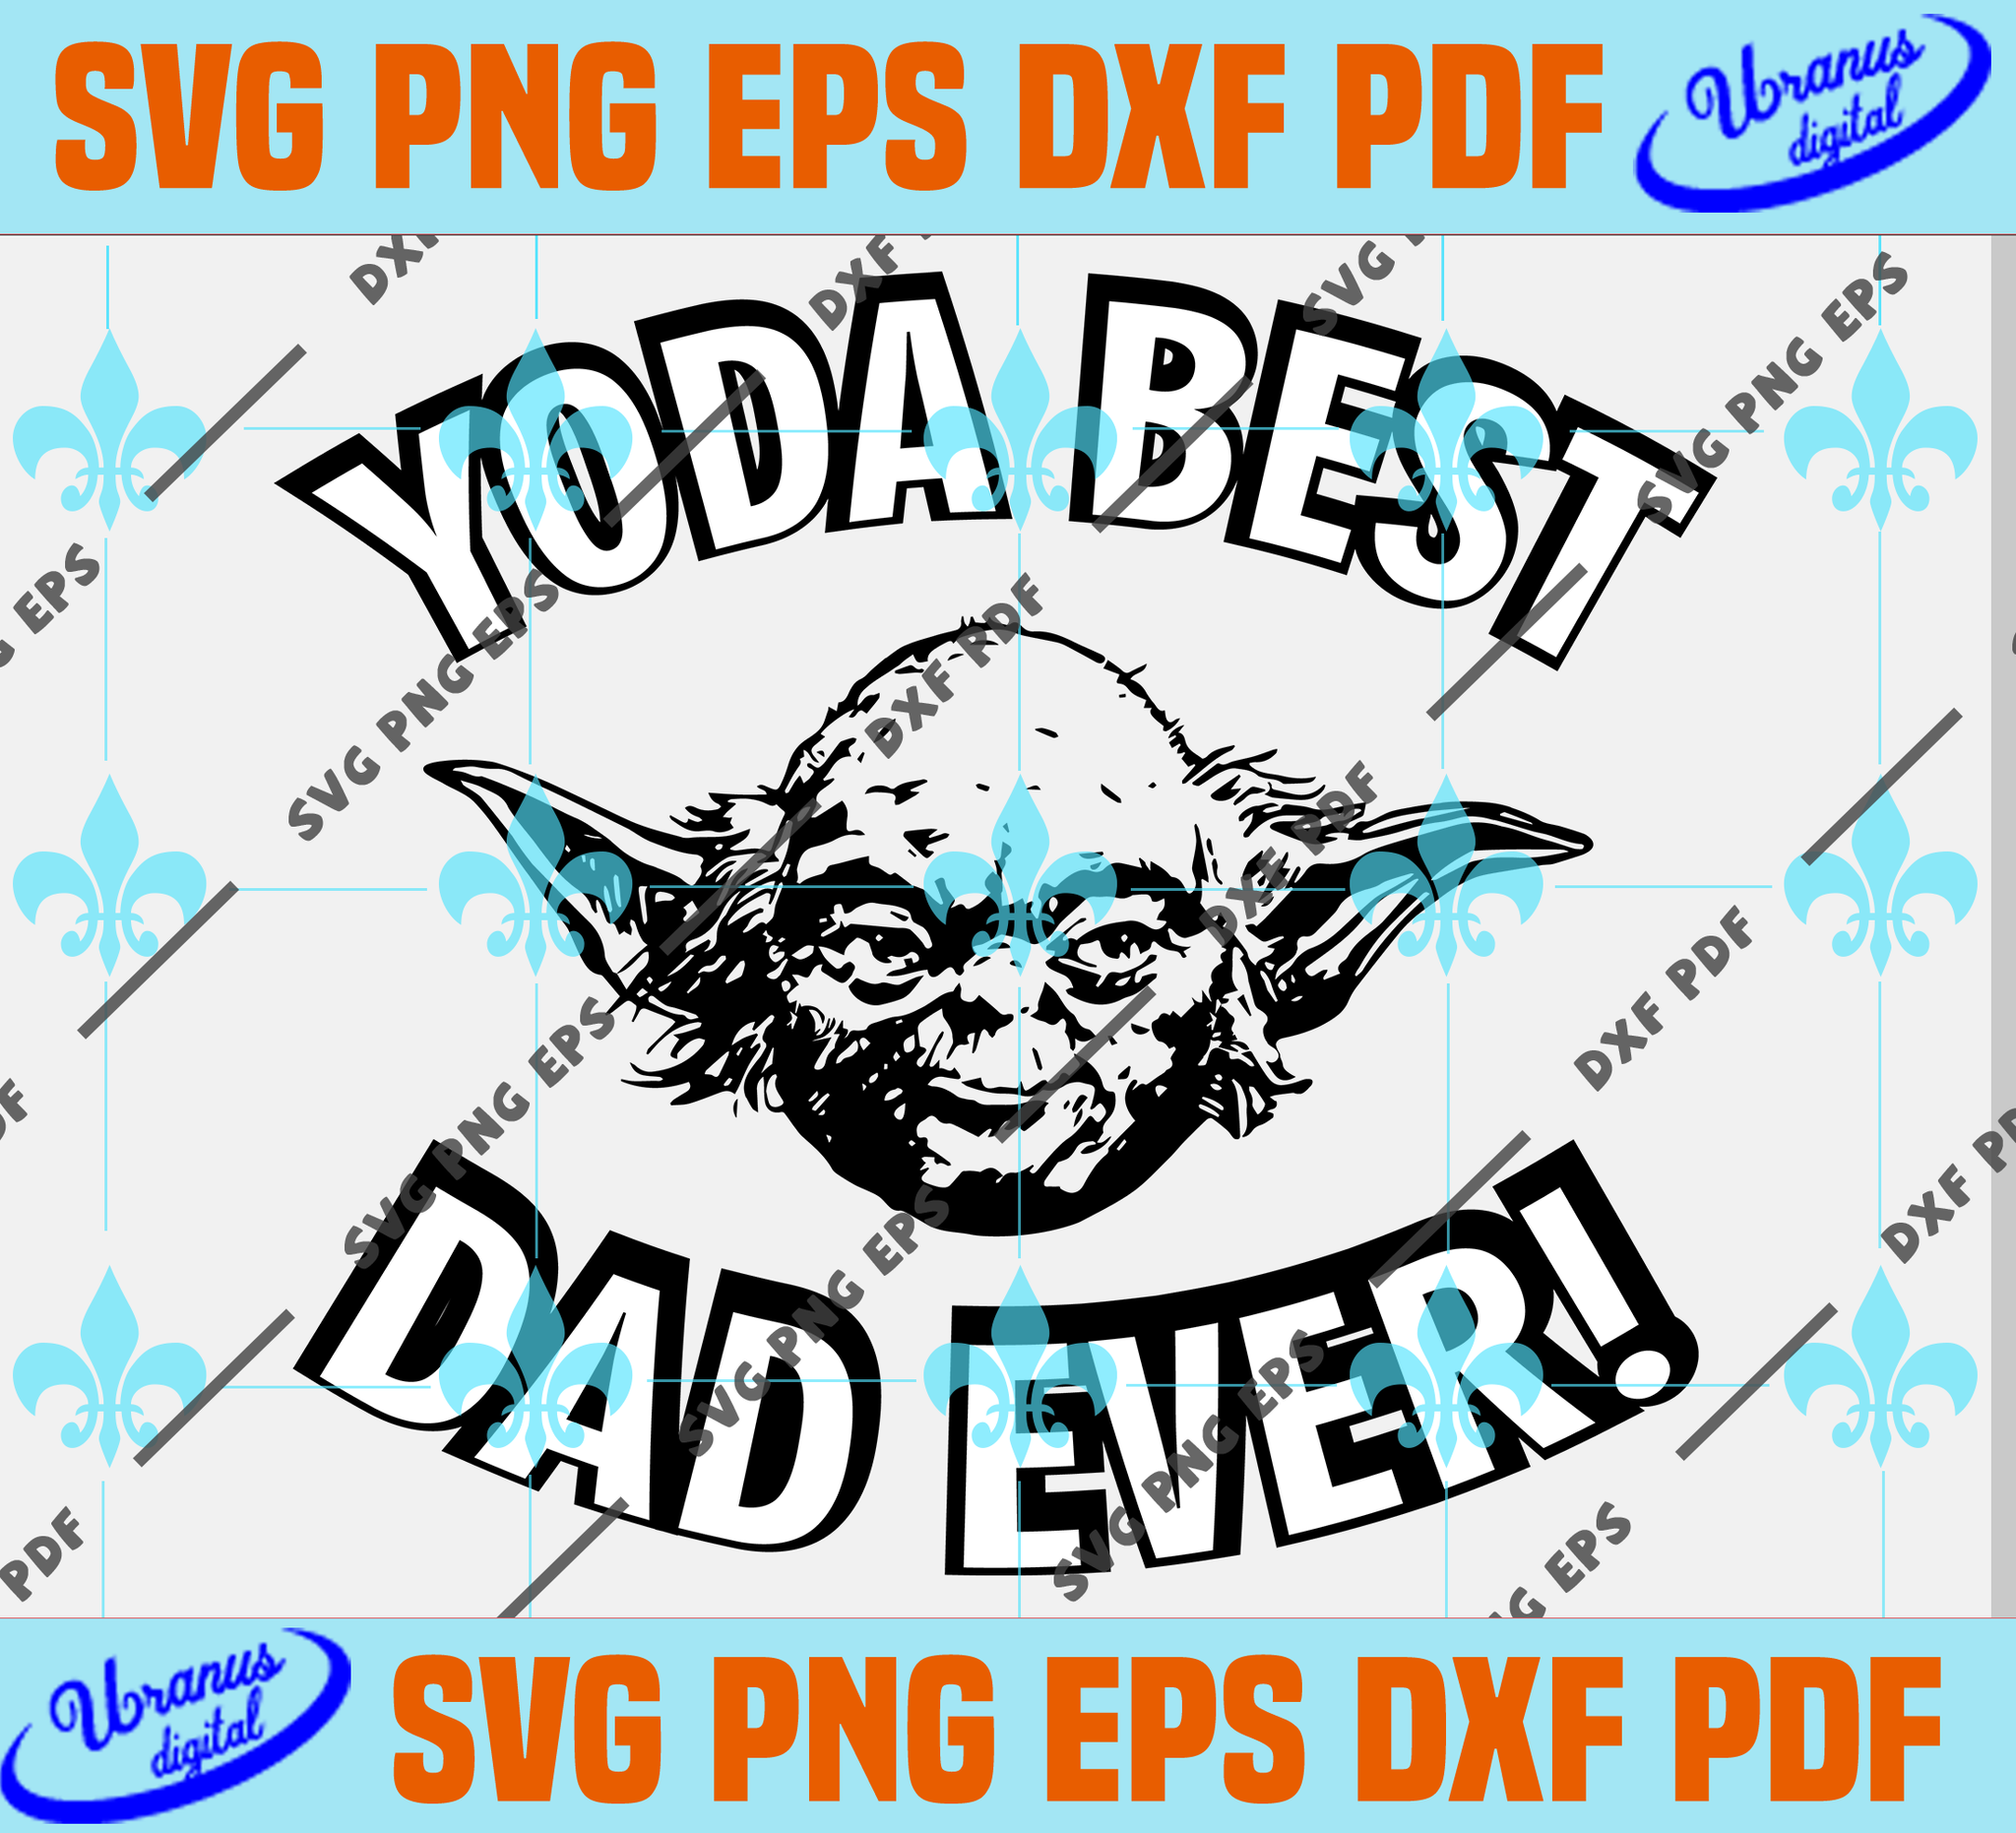 Free Get premier access to raya and the last dragon for $29.99 with a disney+ subscription, and watch as many times as you like. Yoda Best Dad Ever Fathers Day Gift Yoda Svg Yoda Best Dad Dad Gift D Uranusdigital SVG, PNG, EPS, DXF File